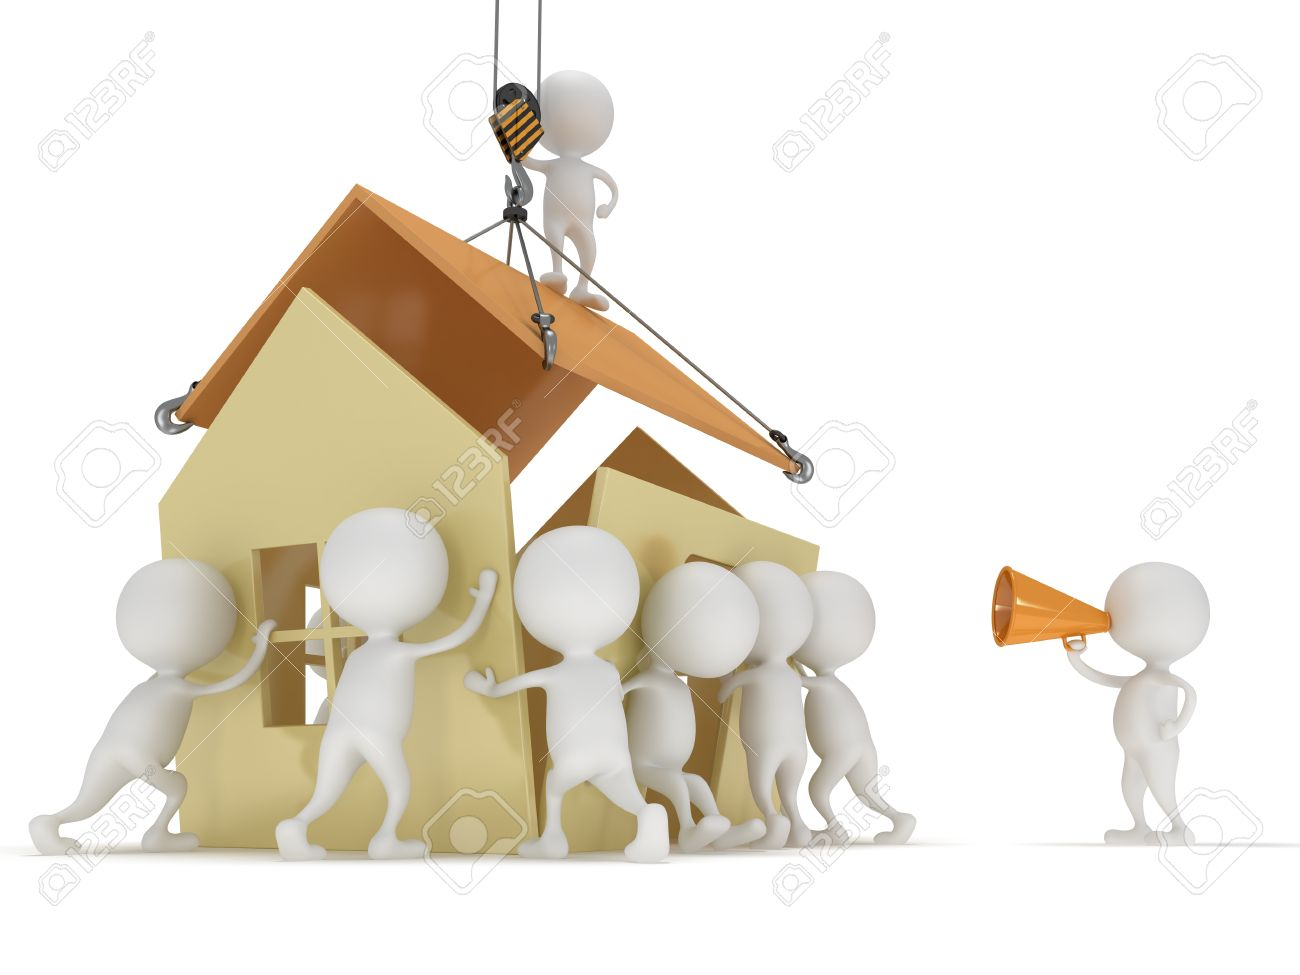 3d People Build A House Business Teamwork Assembling Real Estate Concept Stock Photo